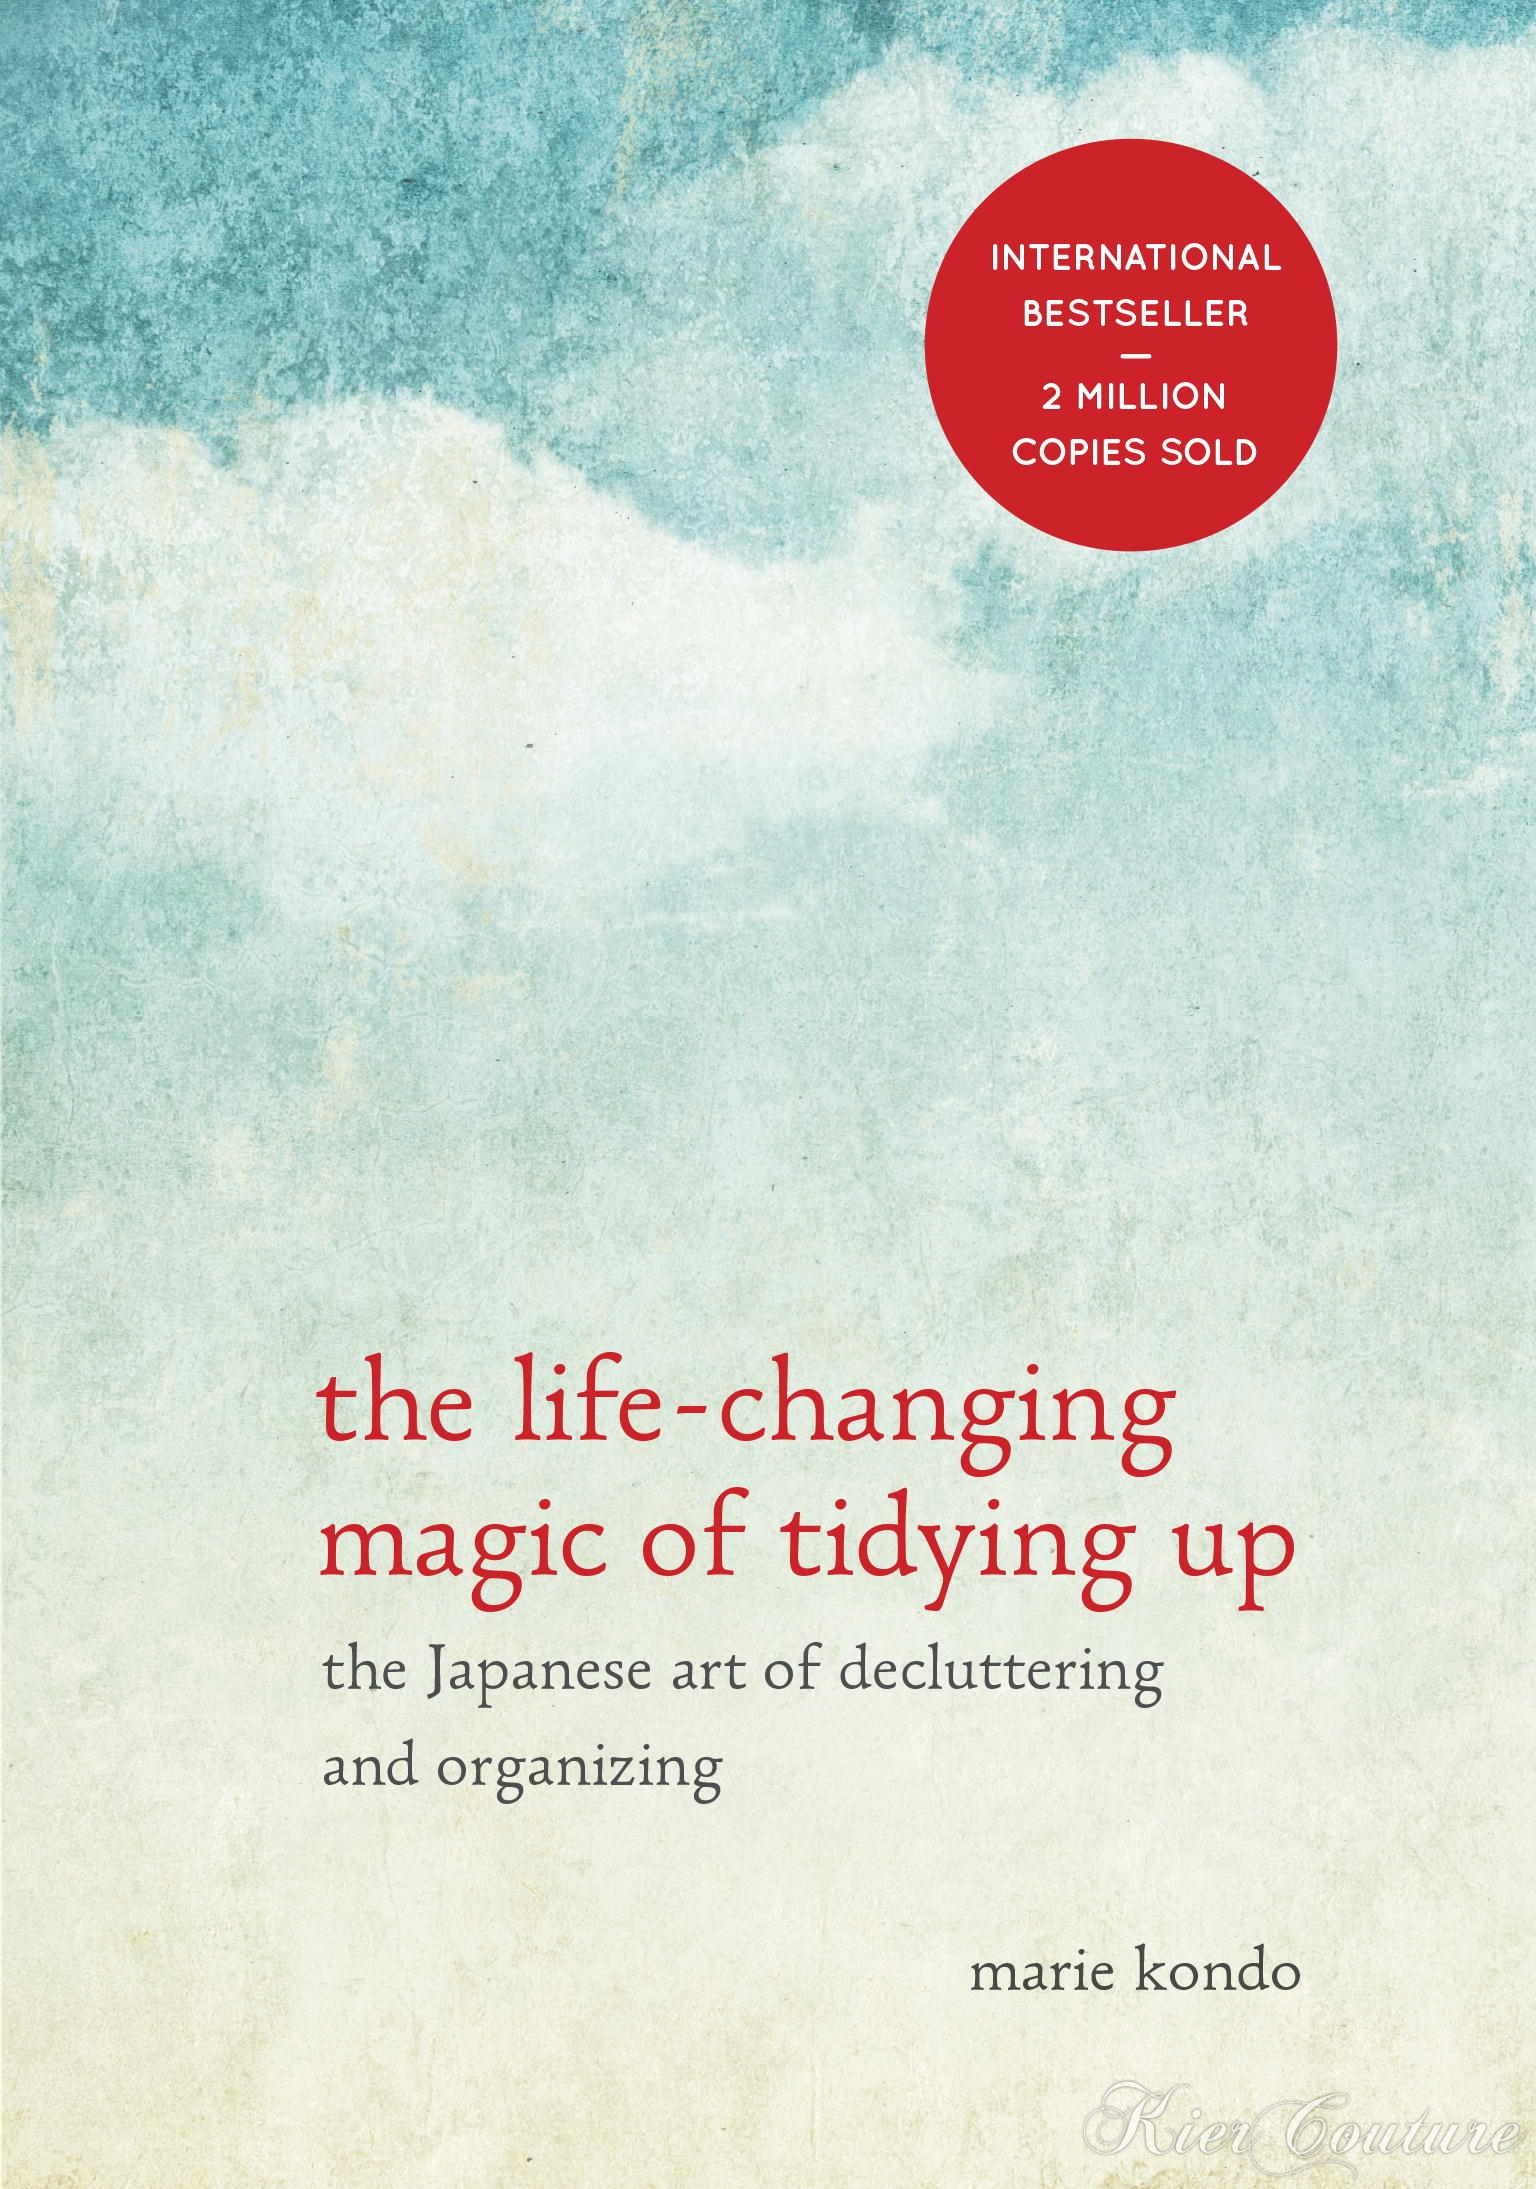 Tidying up: a Break from Blogging to put my Life in Order.